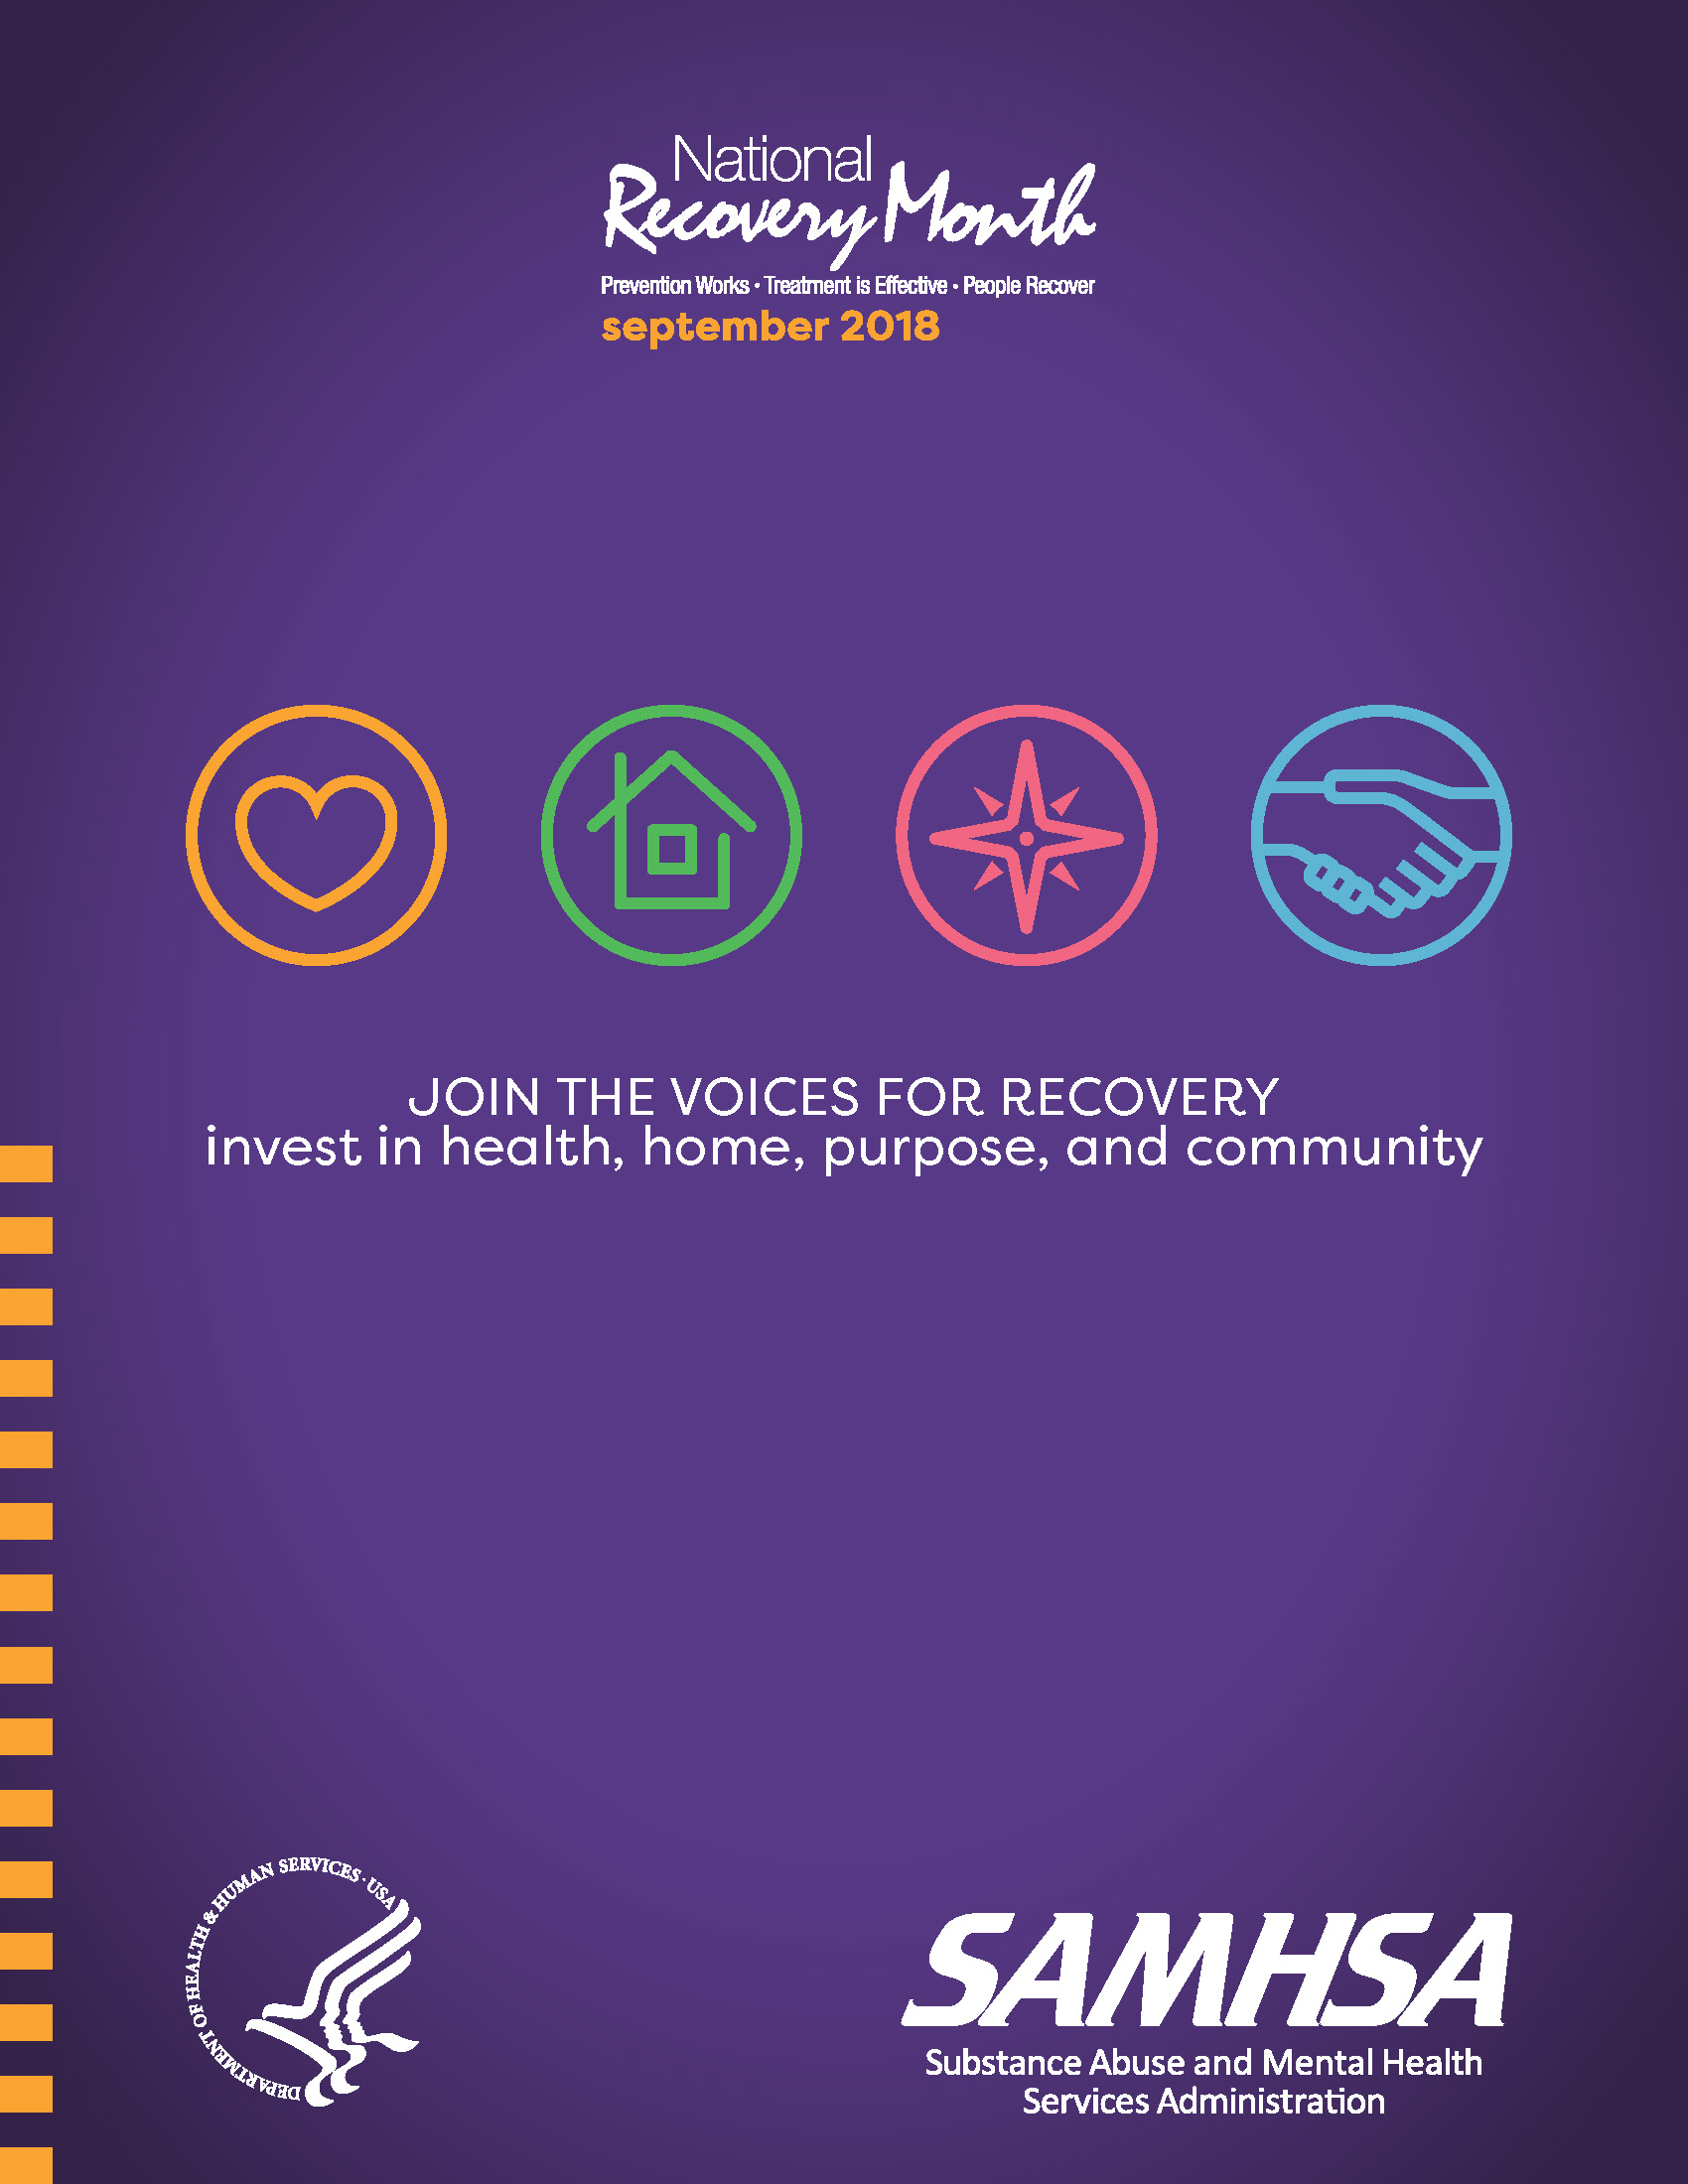 recovery_month_2018_full_toolkit_Page_01.jpg